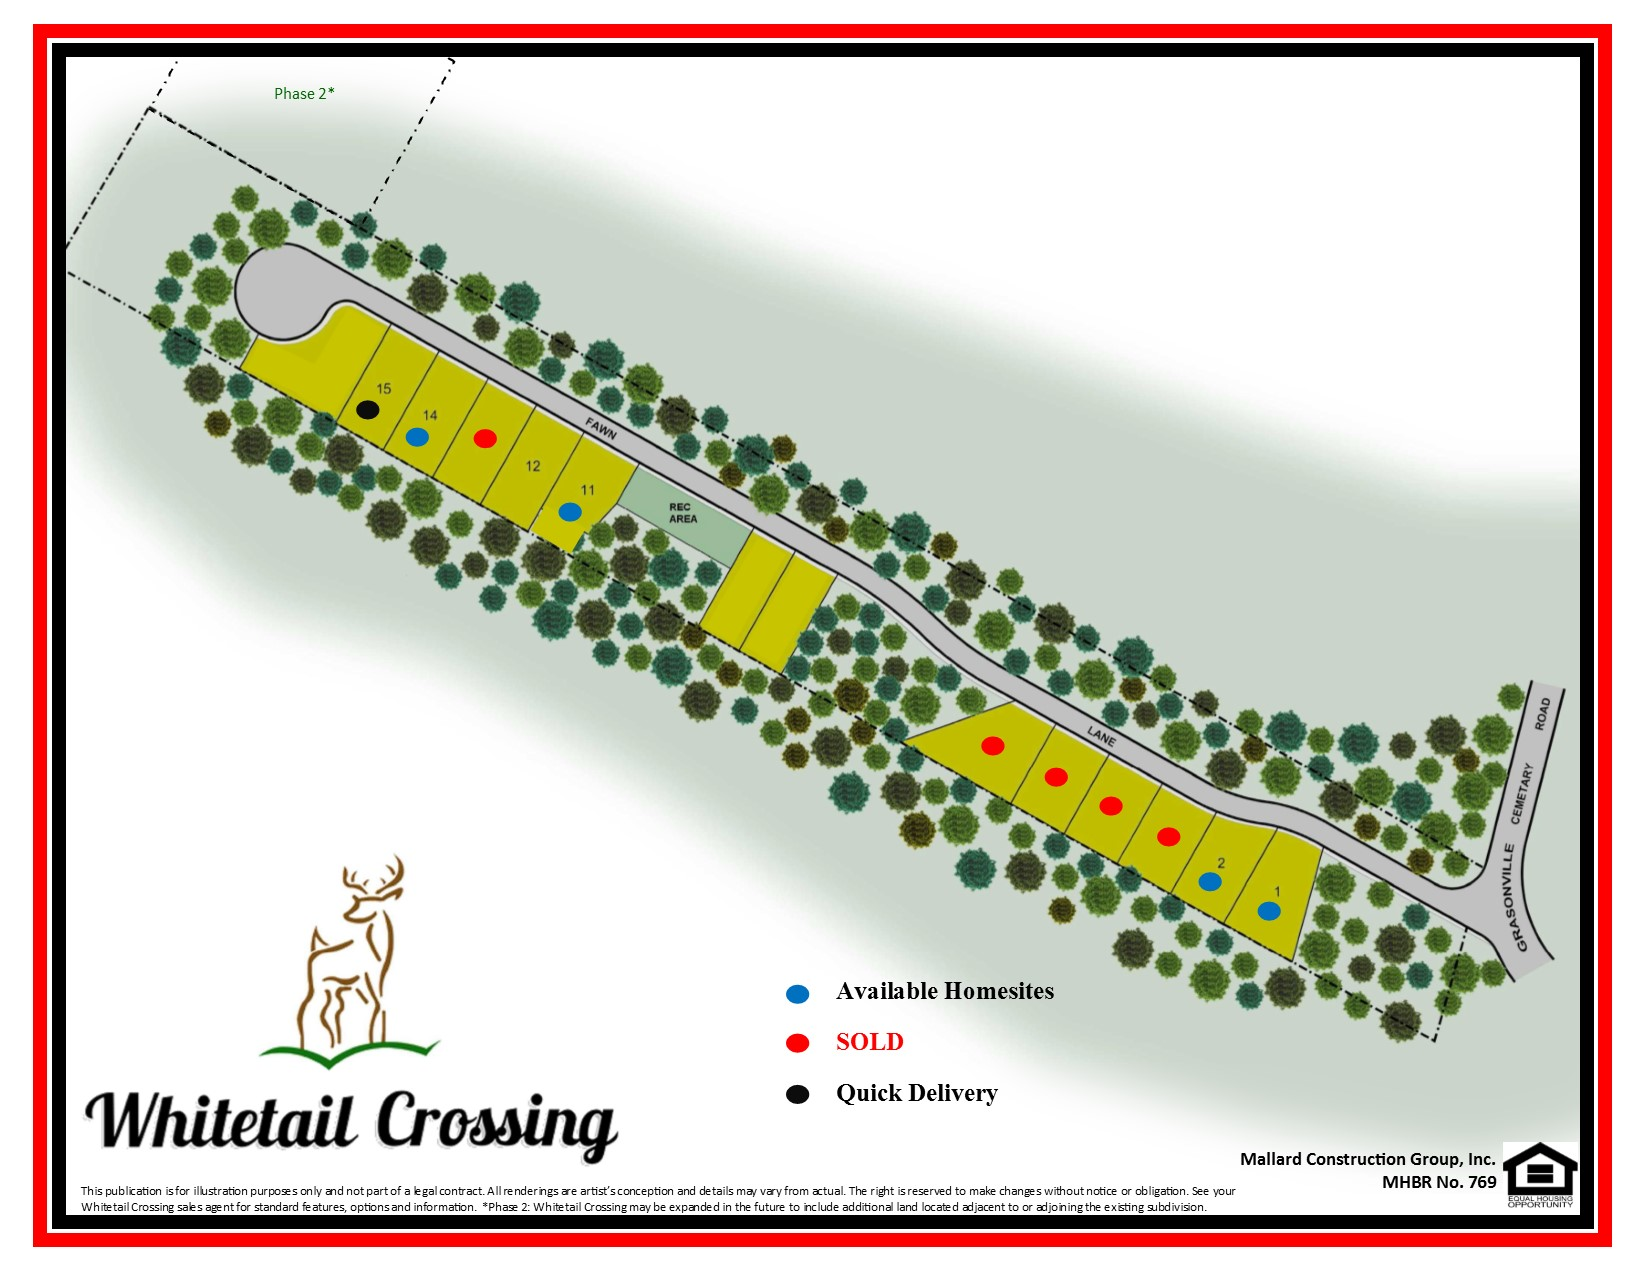 Whitetail Site Plan with Additional Lands with sold dots